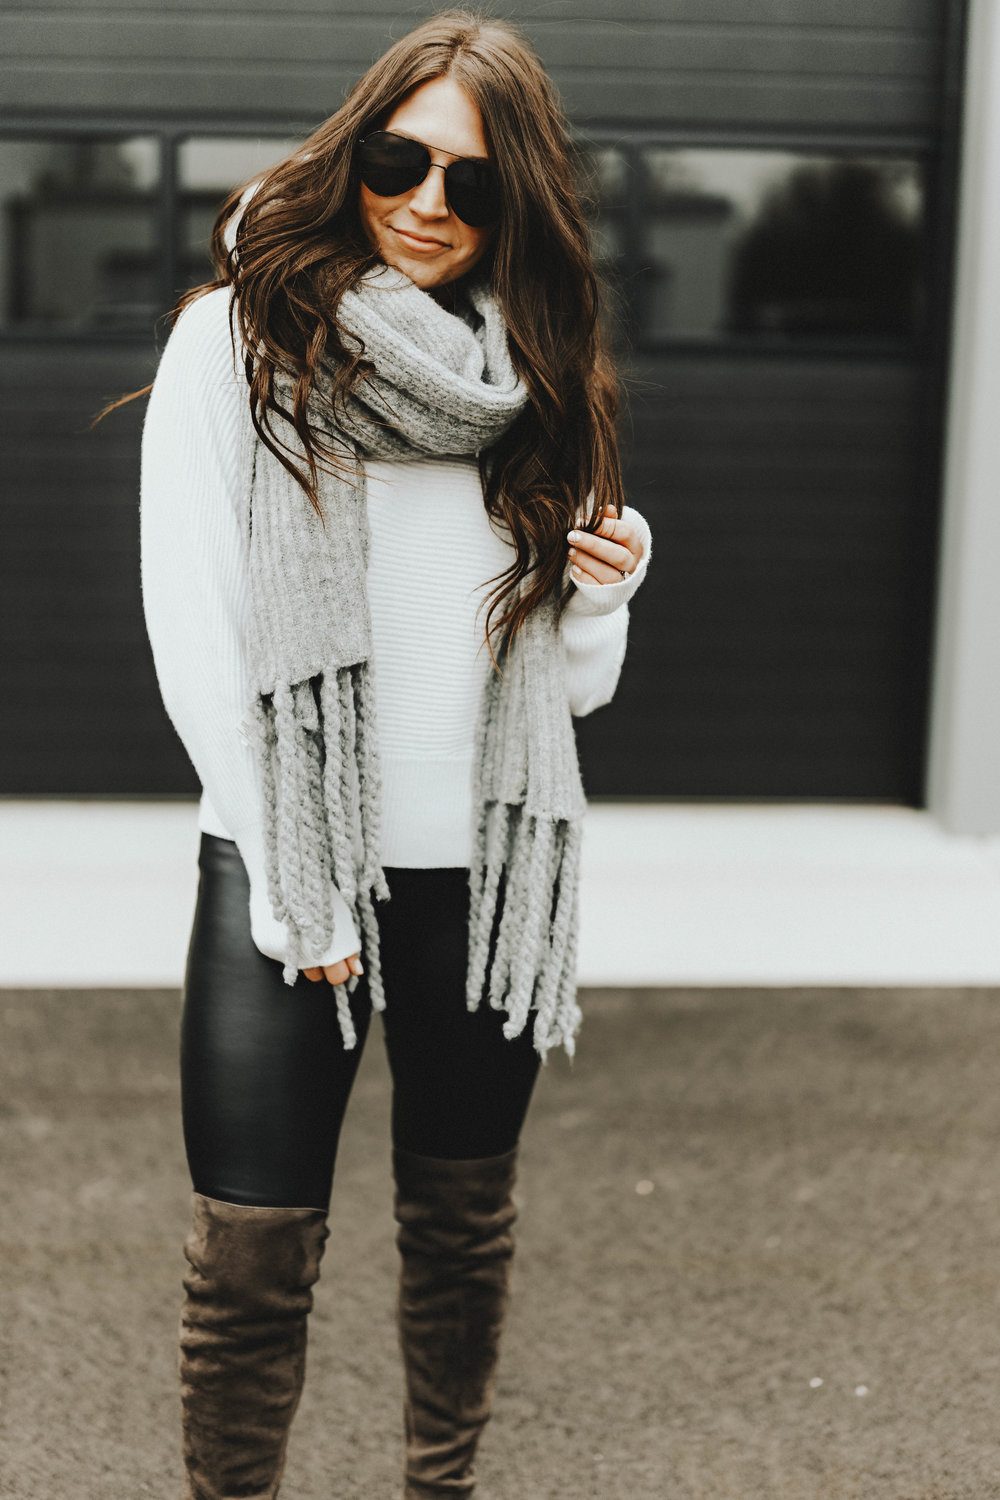 Sweater Weather | Pine Barren Beauty | gentle fawn sweater, free people scarf, faux leather leggings, over the knee boots, winter outfit inspiration, winter outfit idea